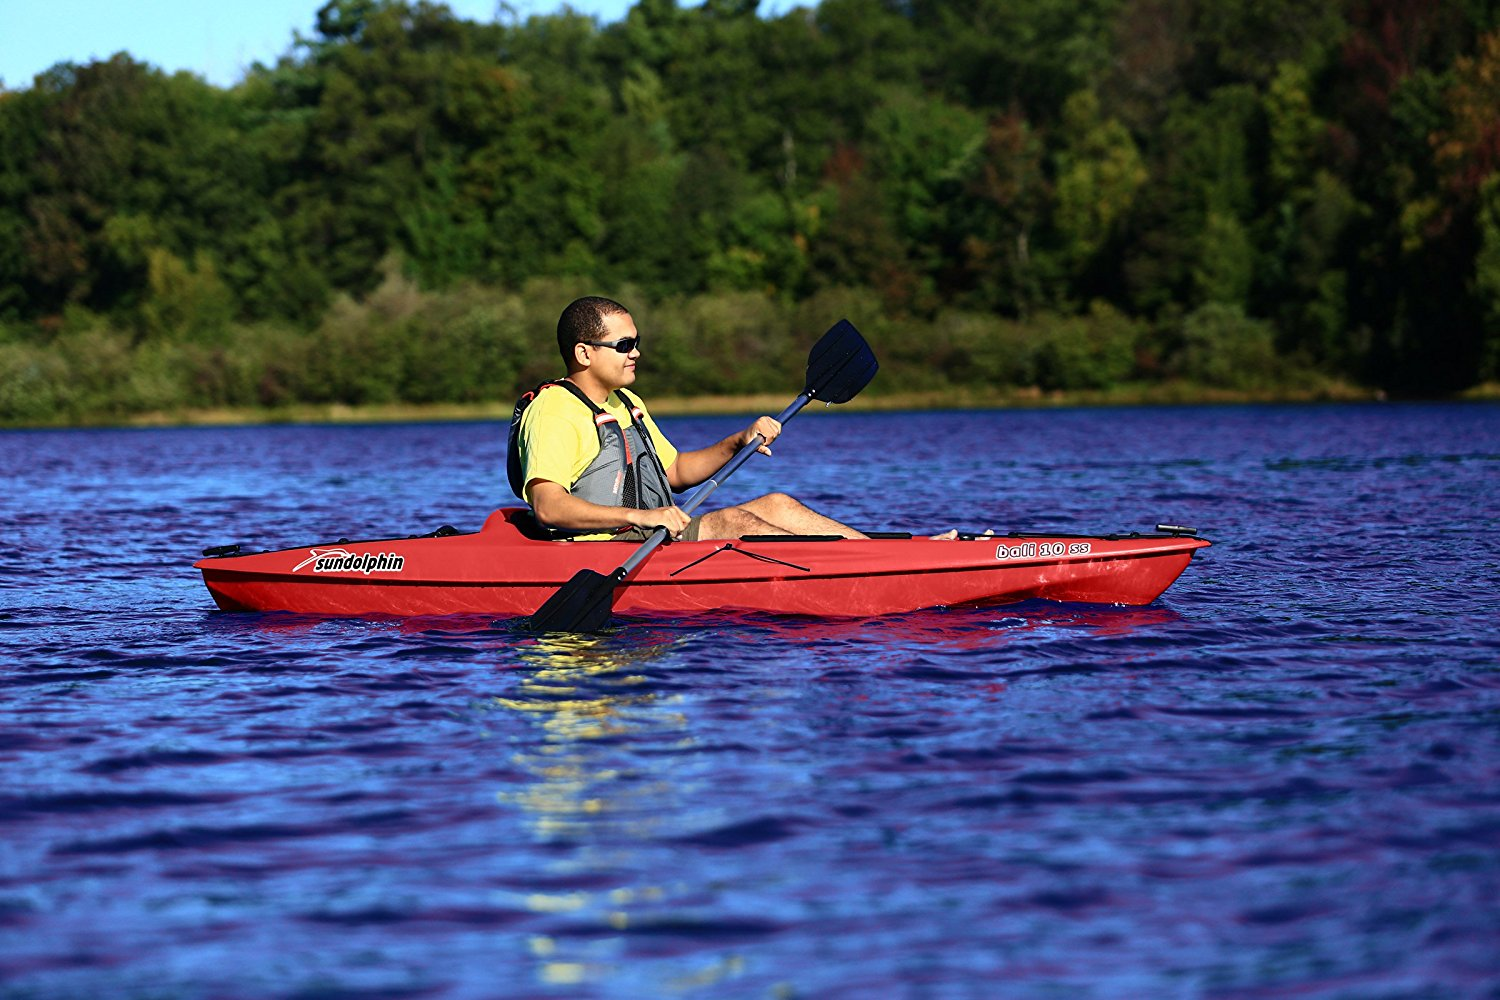 Best Lightweight Fishing Kayak in 2019 – Guide From A Pro